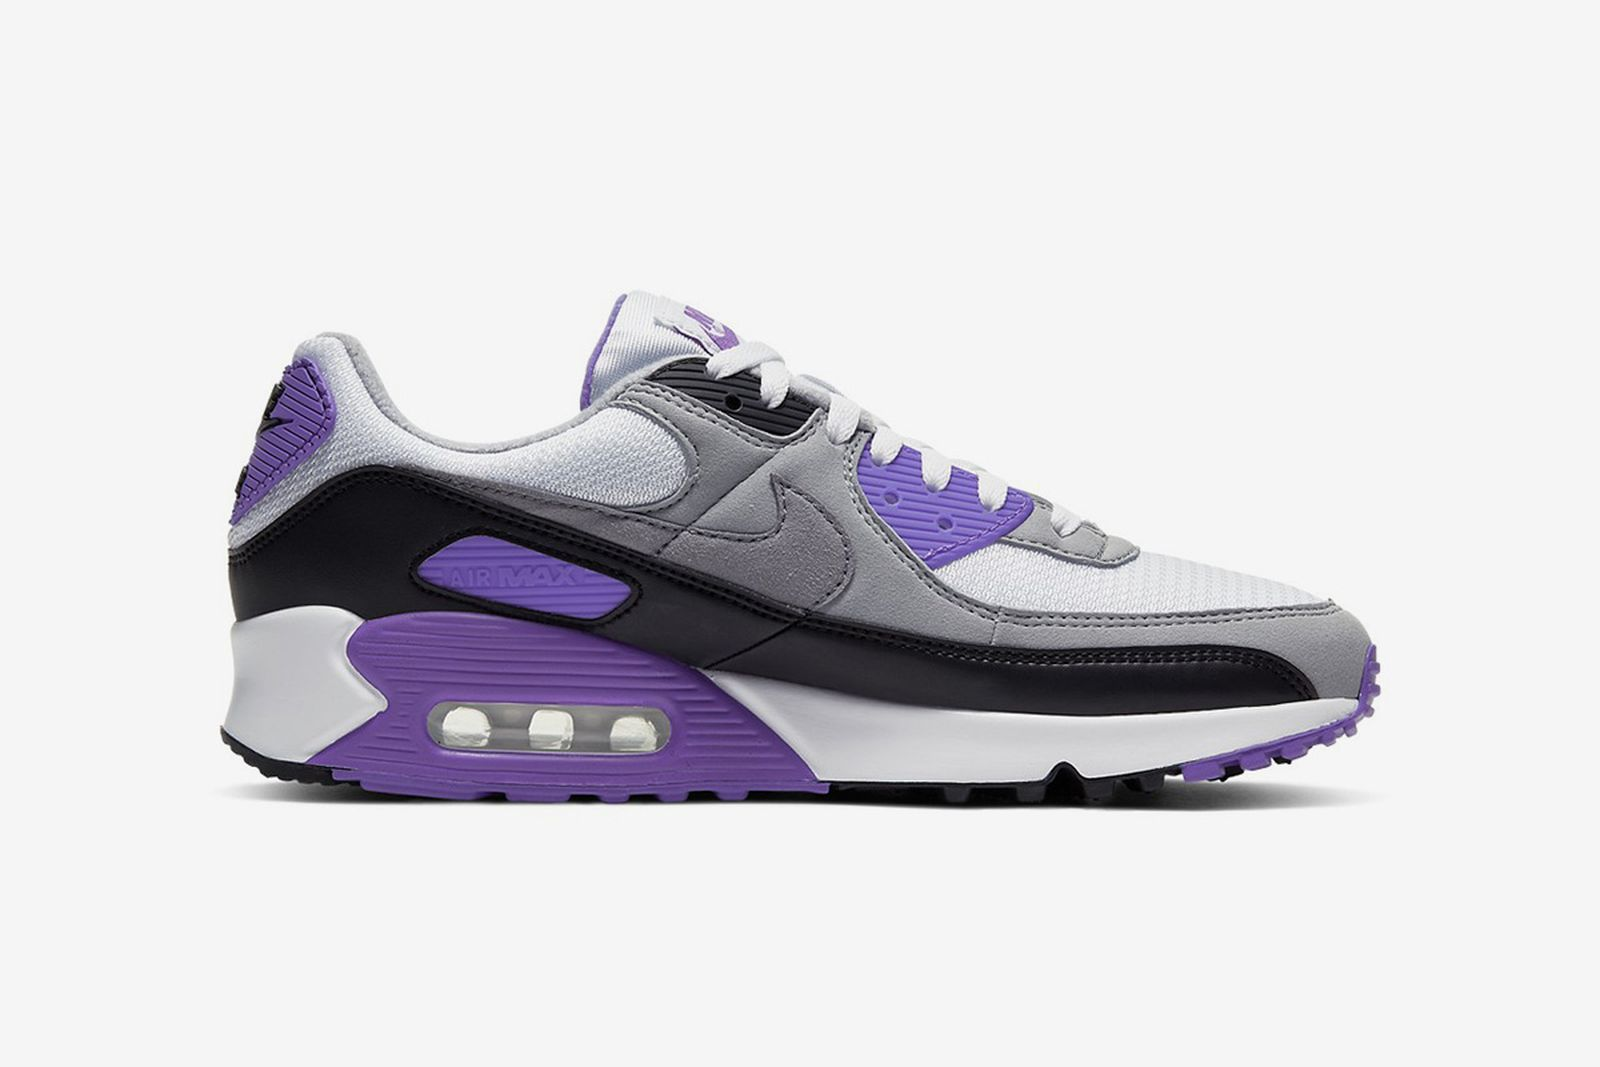 nike-air-max-90-30th-anniversary-colorways-release-date-price-1-07